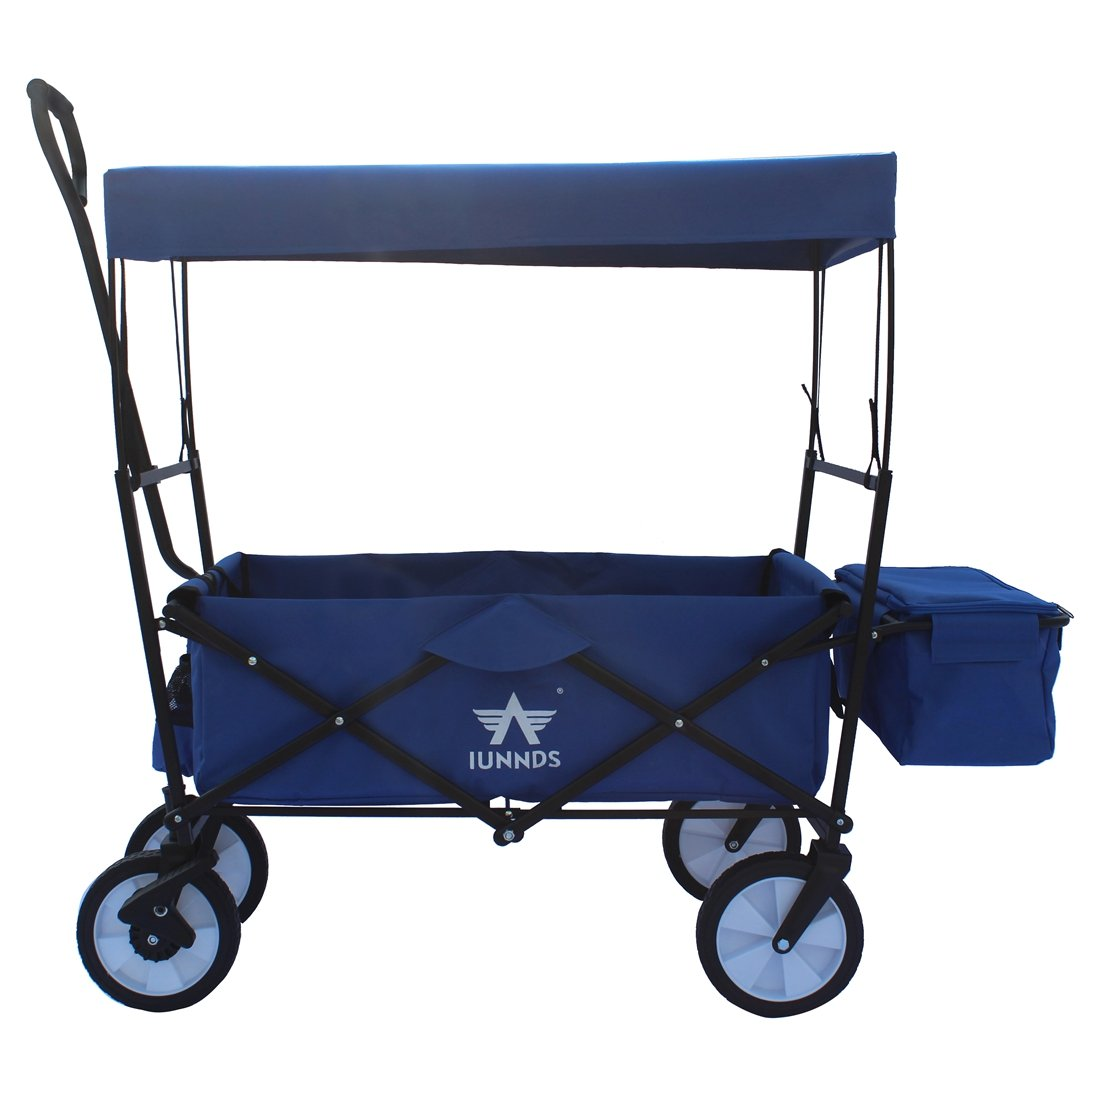 Sports God Folding Wagon Collapsible Utility Garden Cart with Removable Canopy + Storage Basket + FREE Cooler (Blue)